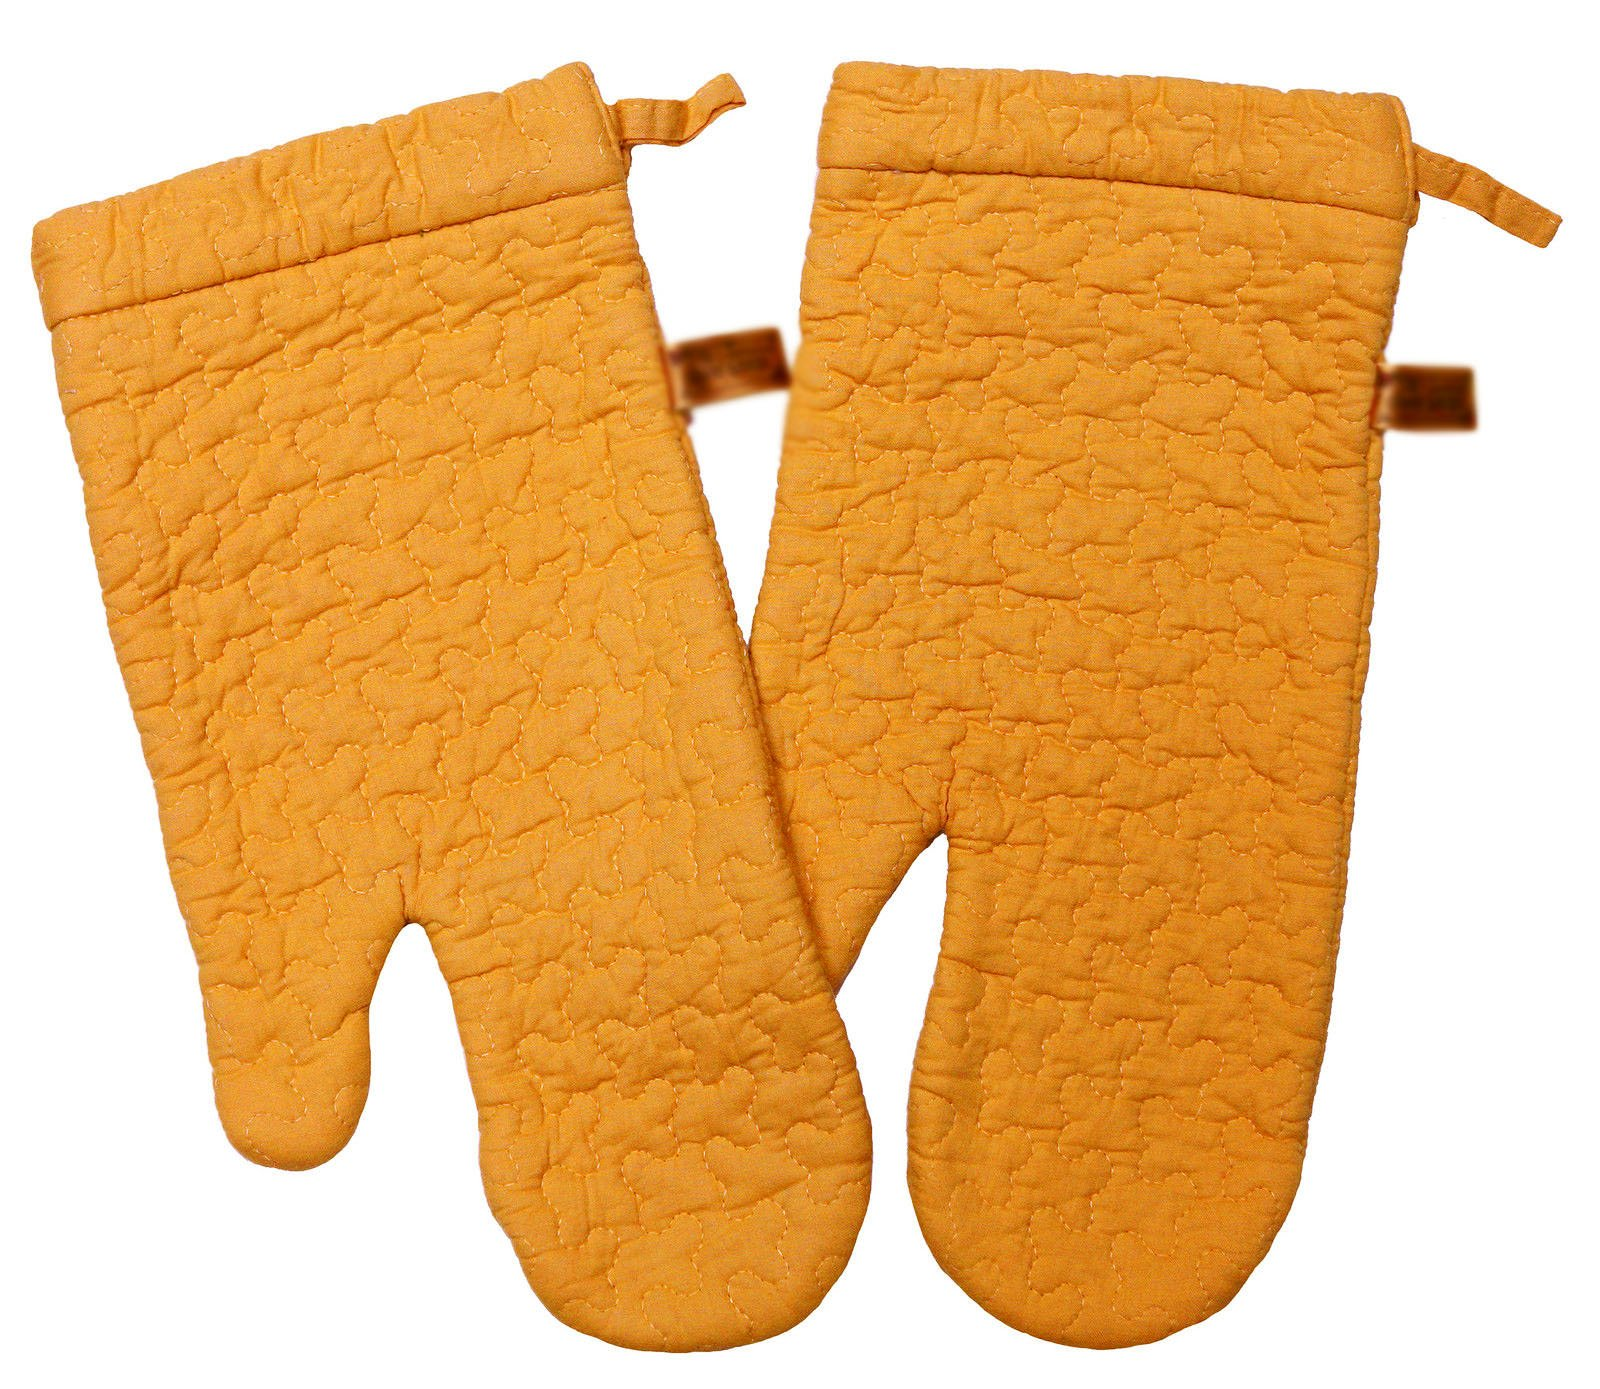 "Custom & Durable {14"" x 6.5"" Inch Each} 4 Set Pack of Mid Size ""Non-Slip"" Pot Holders Gloves Made of Cotton for Carrying Hot Dishes w/ Warm Honey Quilted Classic Puzzle Pattern Style {Yellow}"